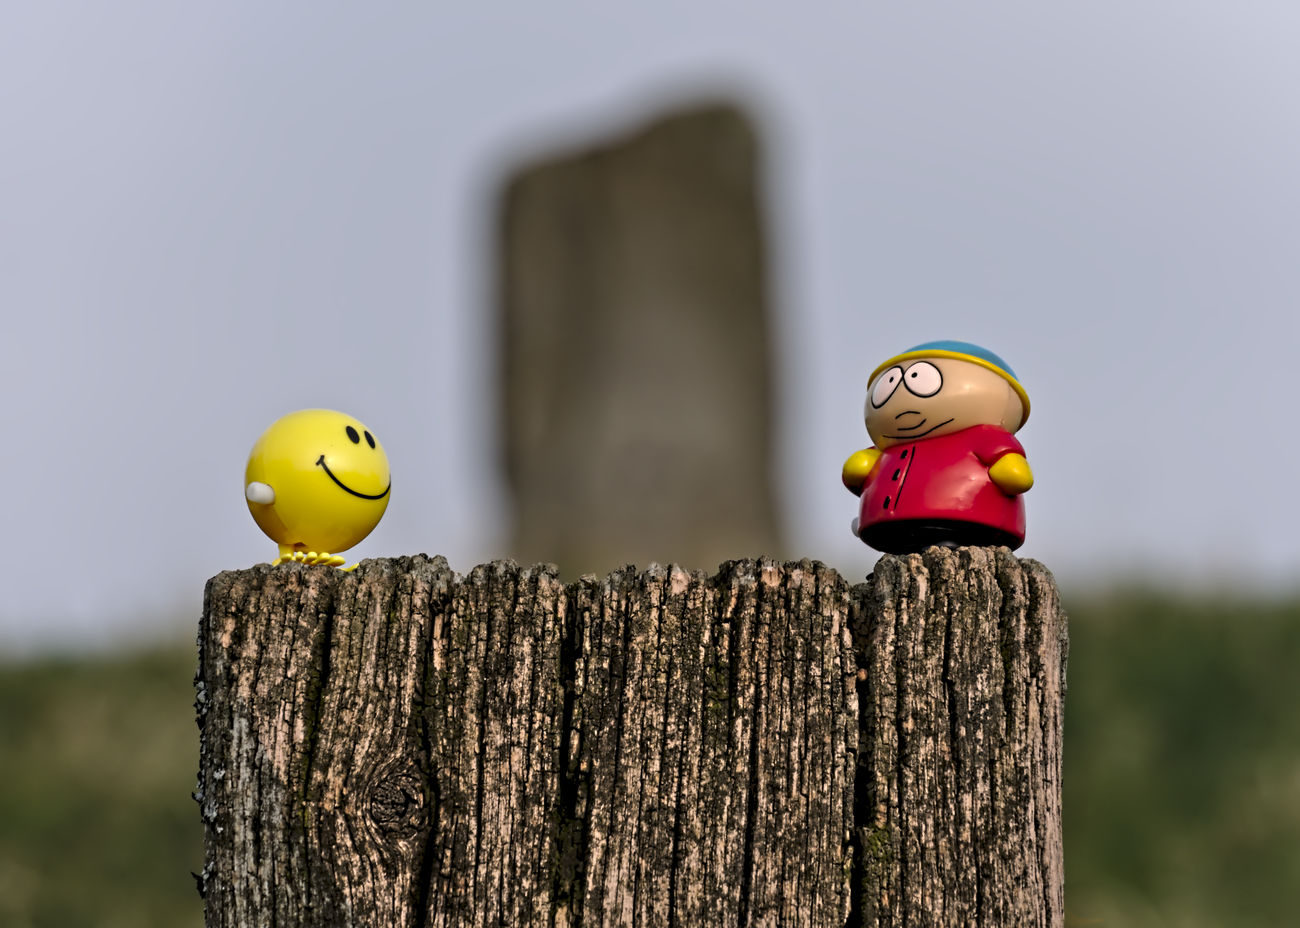 Tomb Adventure Barrow Best Friends Blue Sky Celtic Heritage Celtic Monument Close-up Day Eric Cartman Focus On Foreground Hochdorf Horizon Over Land Keltic Nikon Outdoors Selective Focus Smily Stone - Object Tombstone Toy Toy Adventures Toy Story Wood - Material Wooden Post Wooden Texture Yellow